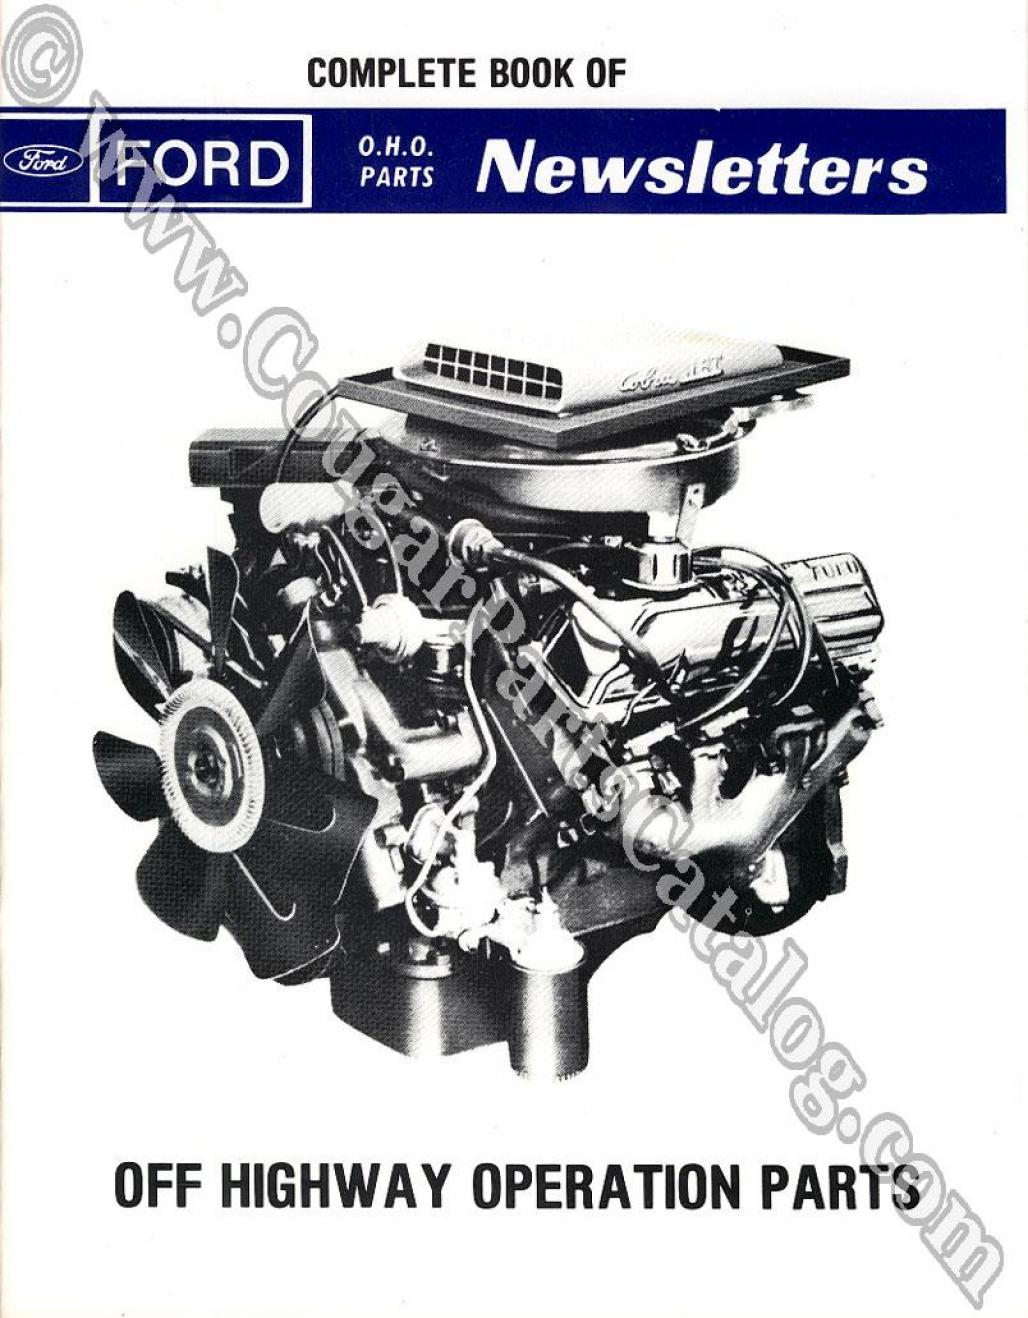 Complete Book of Off Highway Operations Parts Newsletters - Repro ~ 1972 - 1973 Mercury Cougar - 1972 - 1973 Ford Mustang - 1972 - 1973 All Ford - 1972 - 1973 All Mercury - 25954